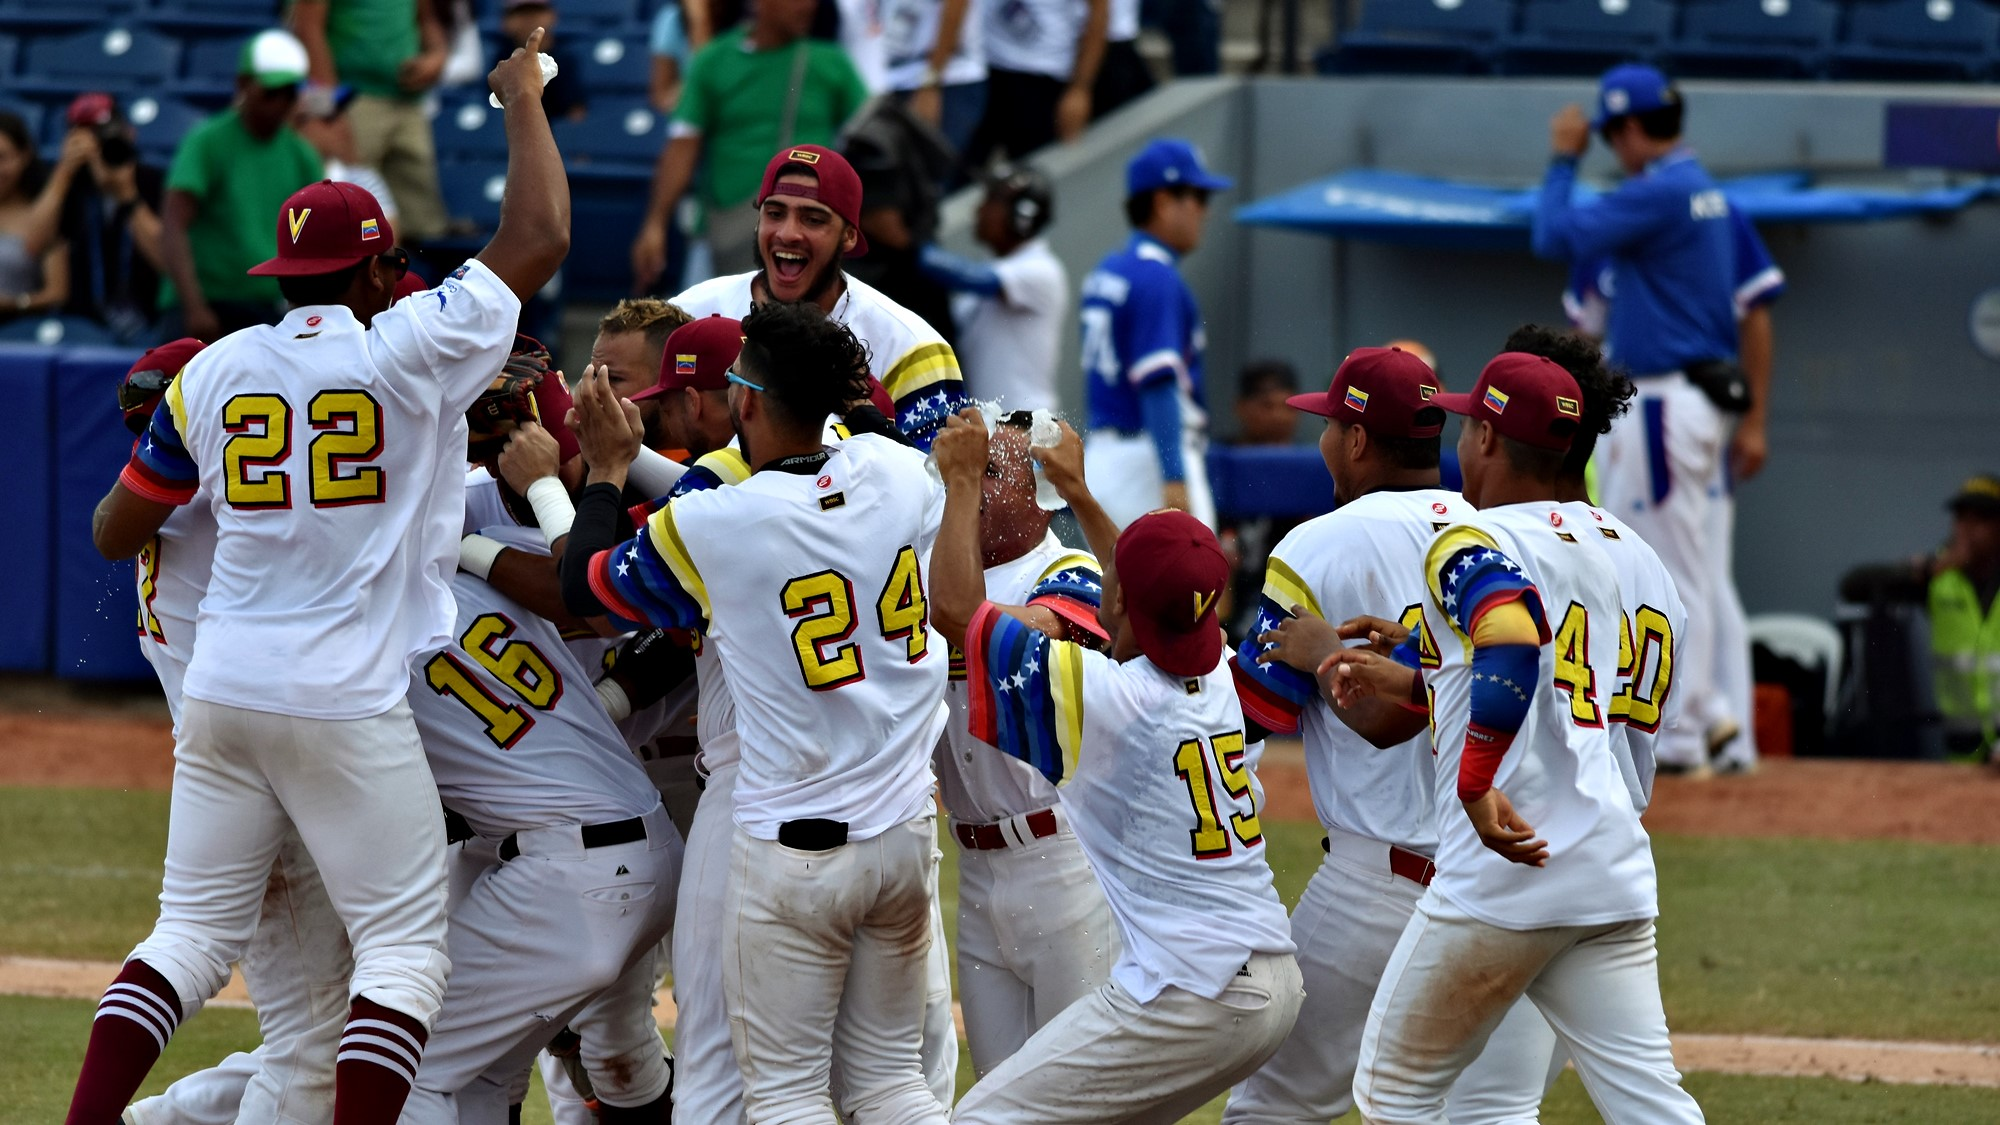 Venezuela earns a historical bronze medal in the U-23 Baseball World Cup